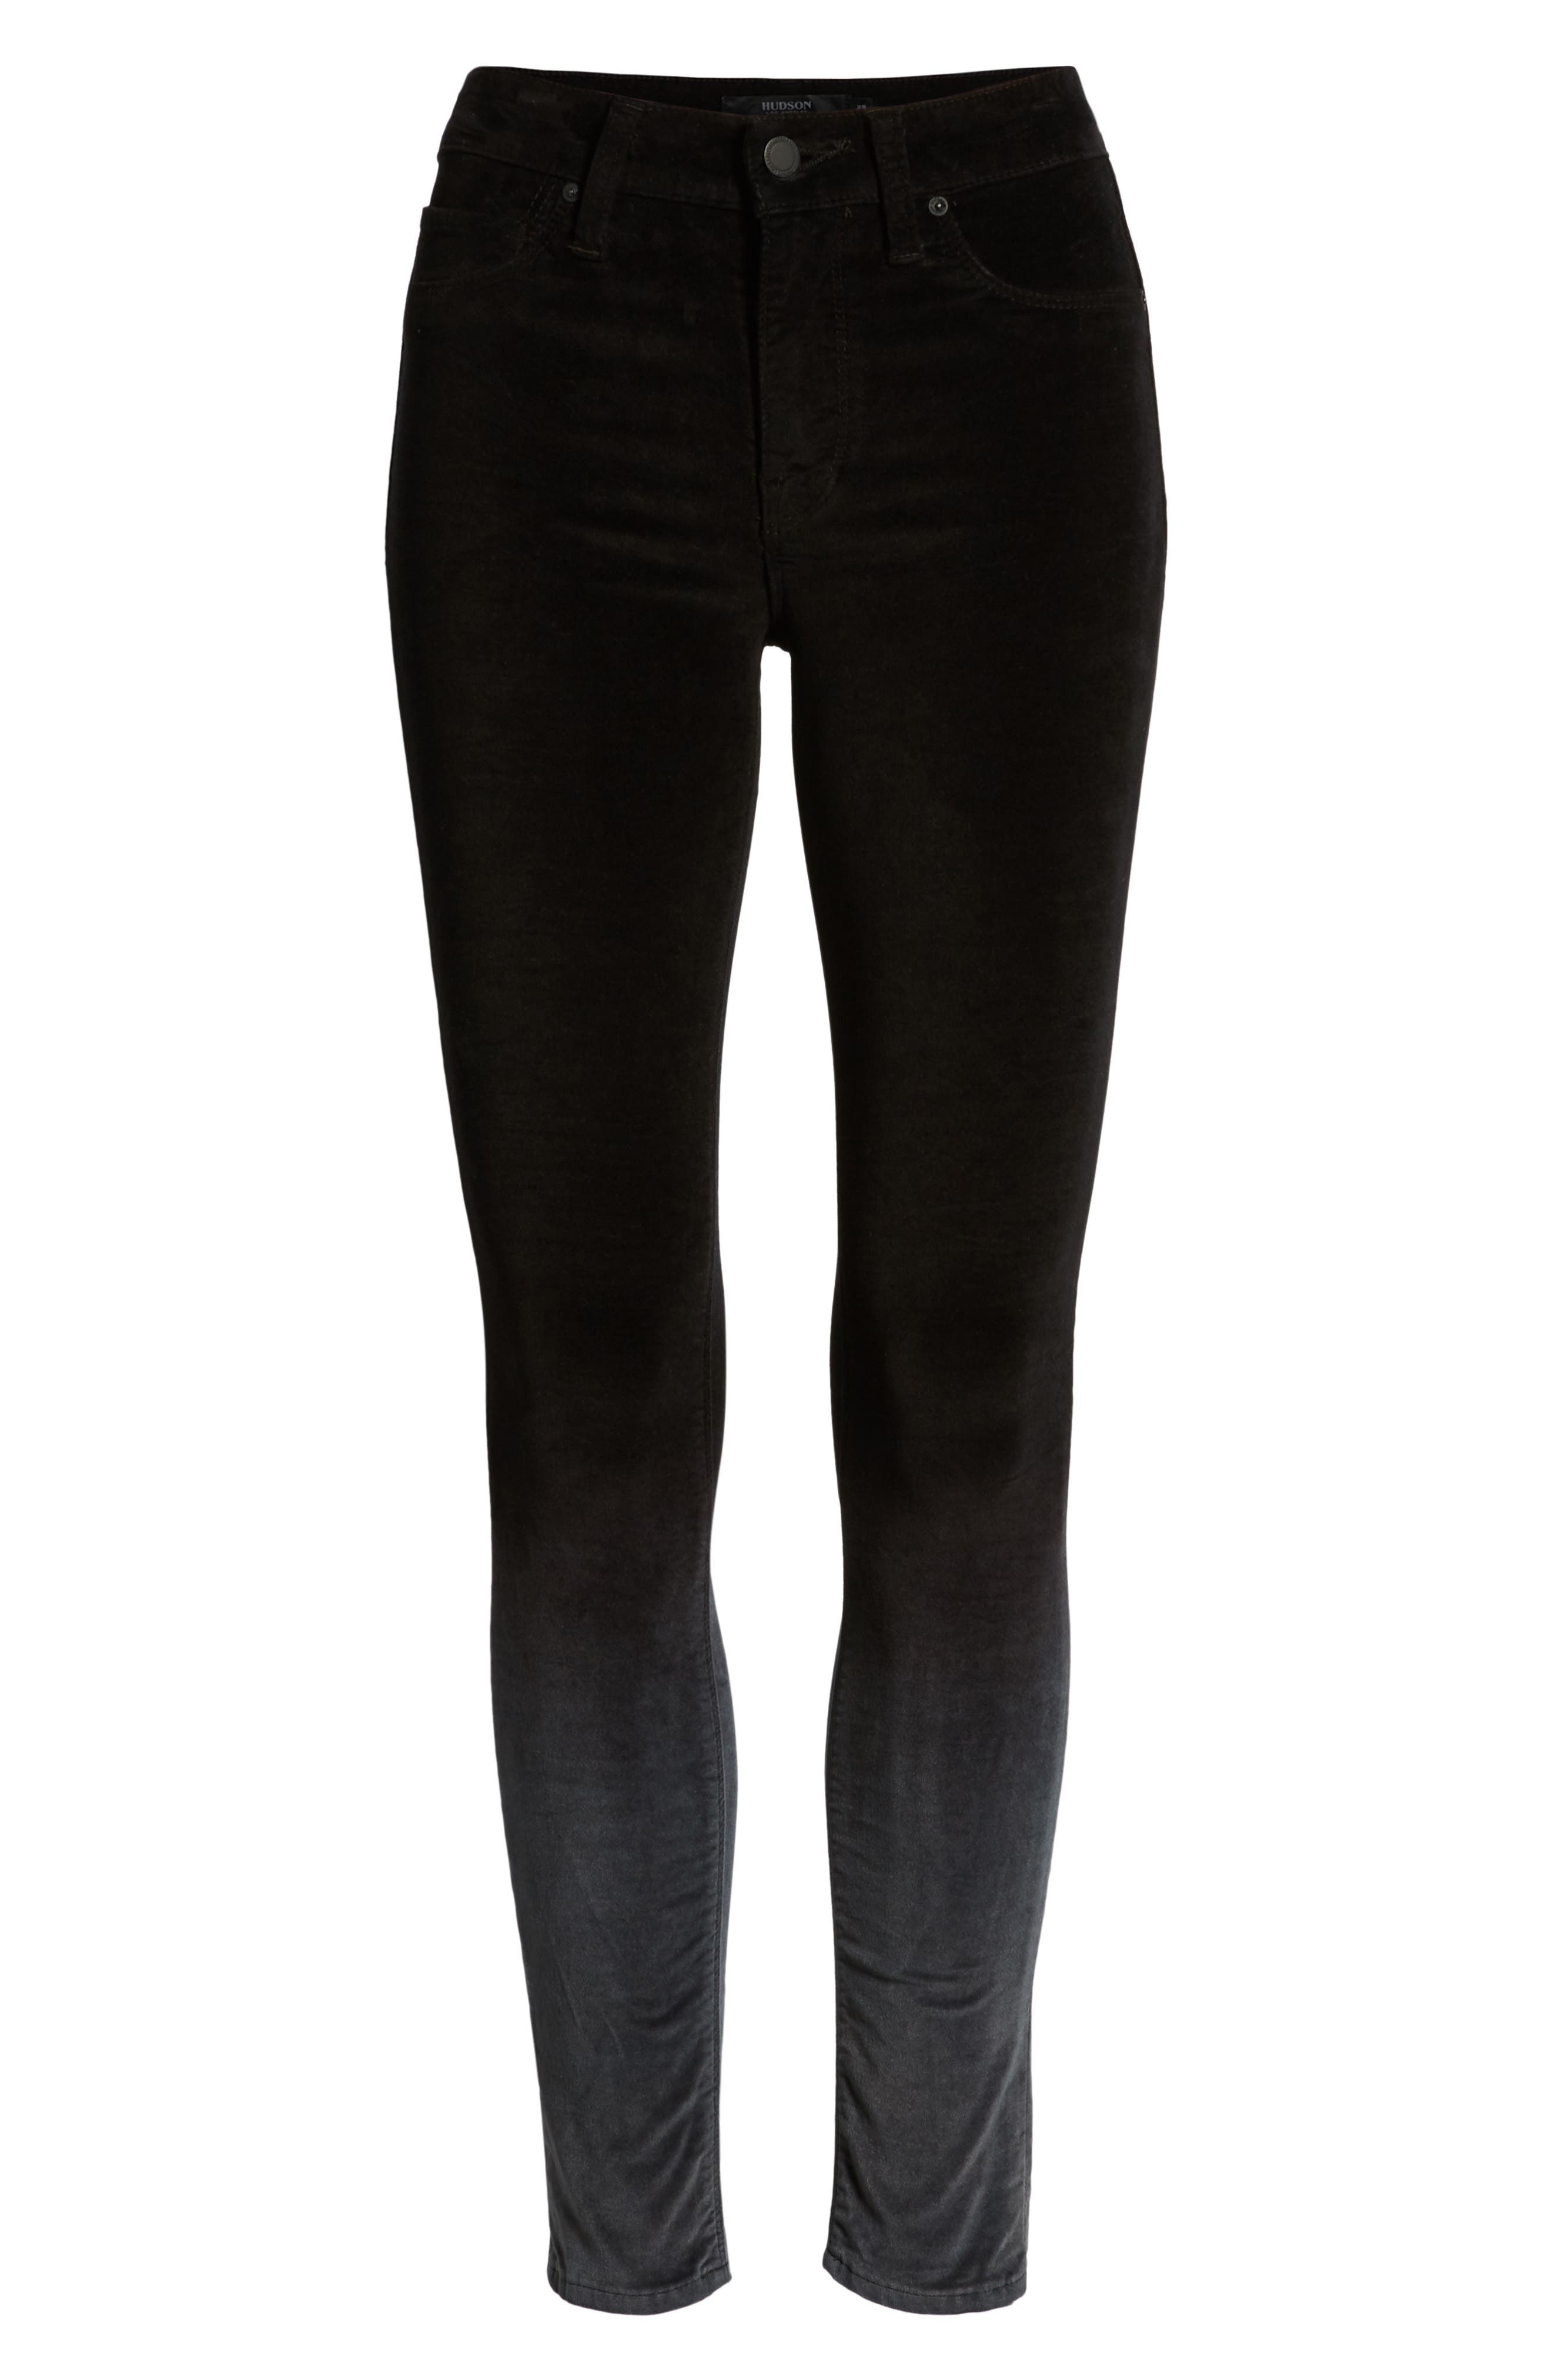 Nico Ankle Super Skinny Jeans,                             Alternate thumbnail 7, color,                             DEGRADE BLACK SLATE